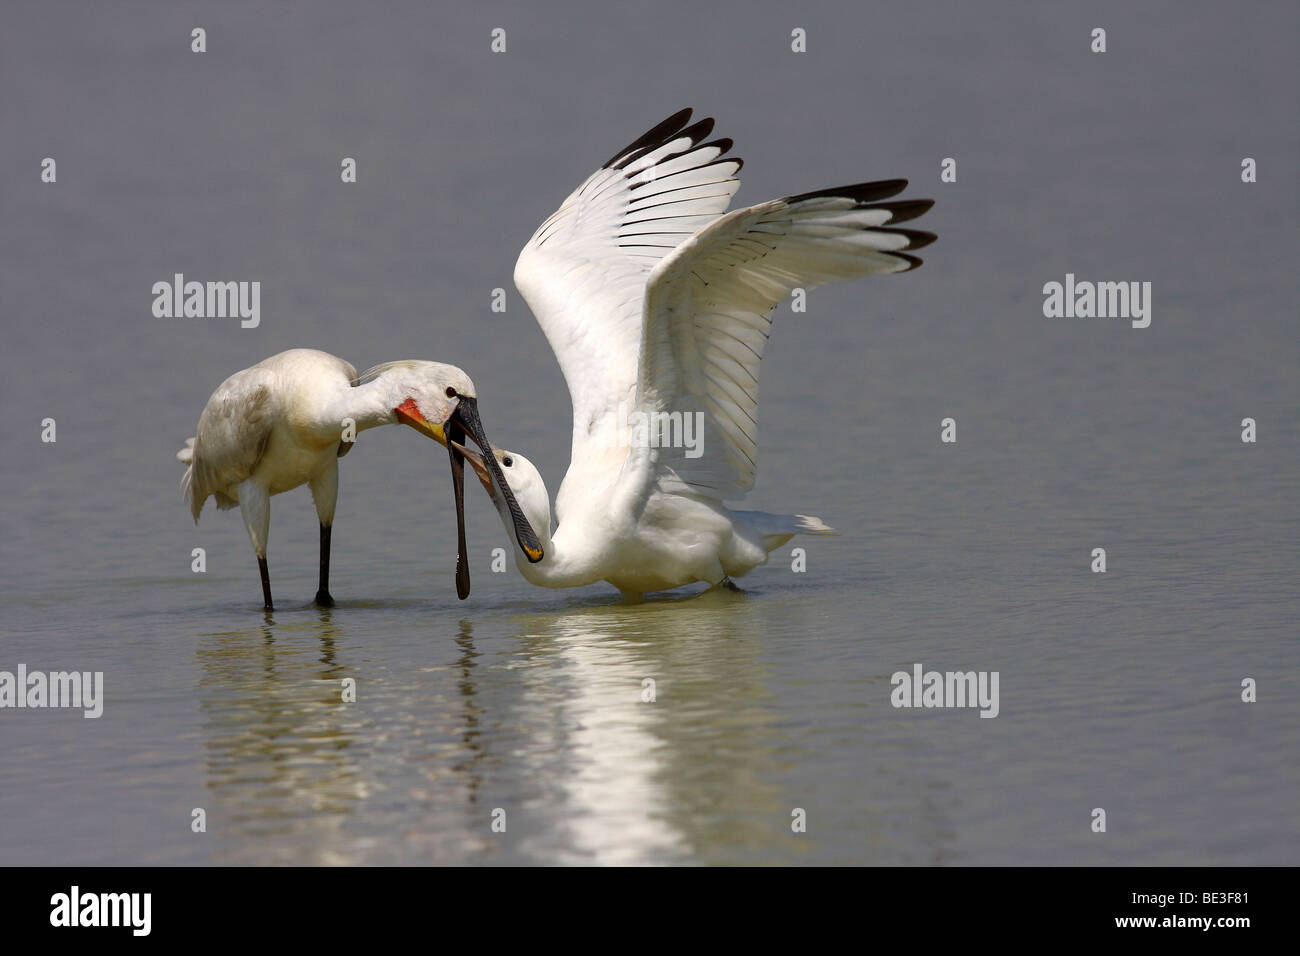 Junger spoonbill (Platalea leucorodia), is fed by an adult bird for food Stock Photo